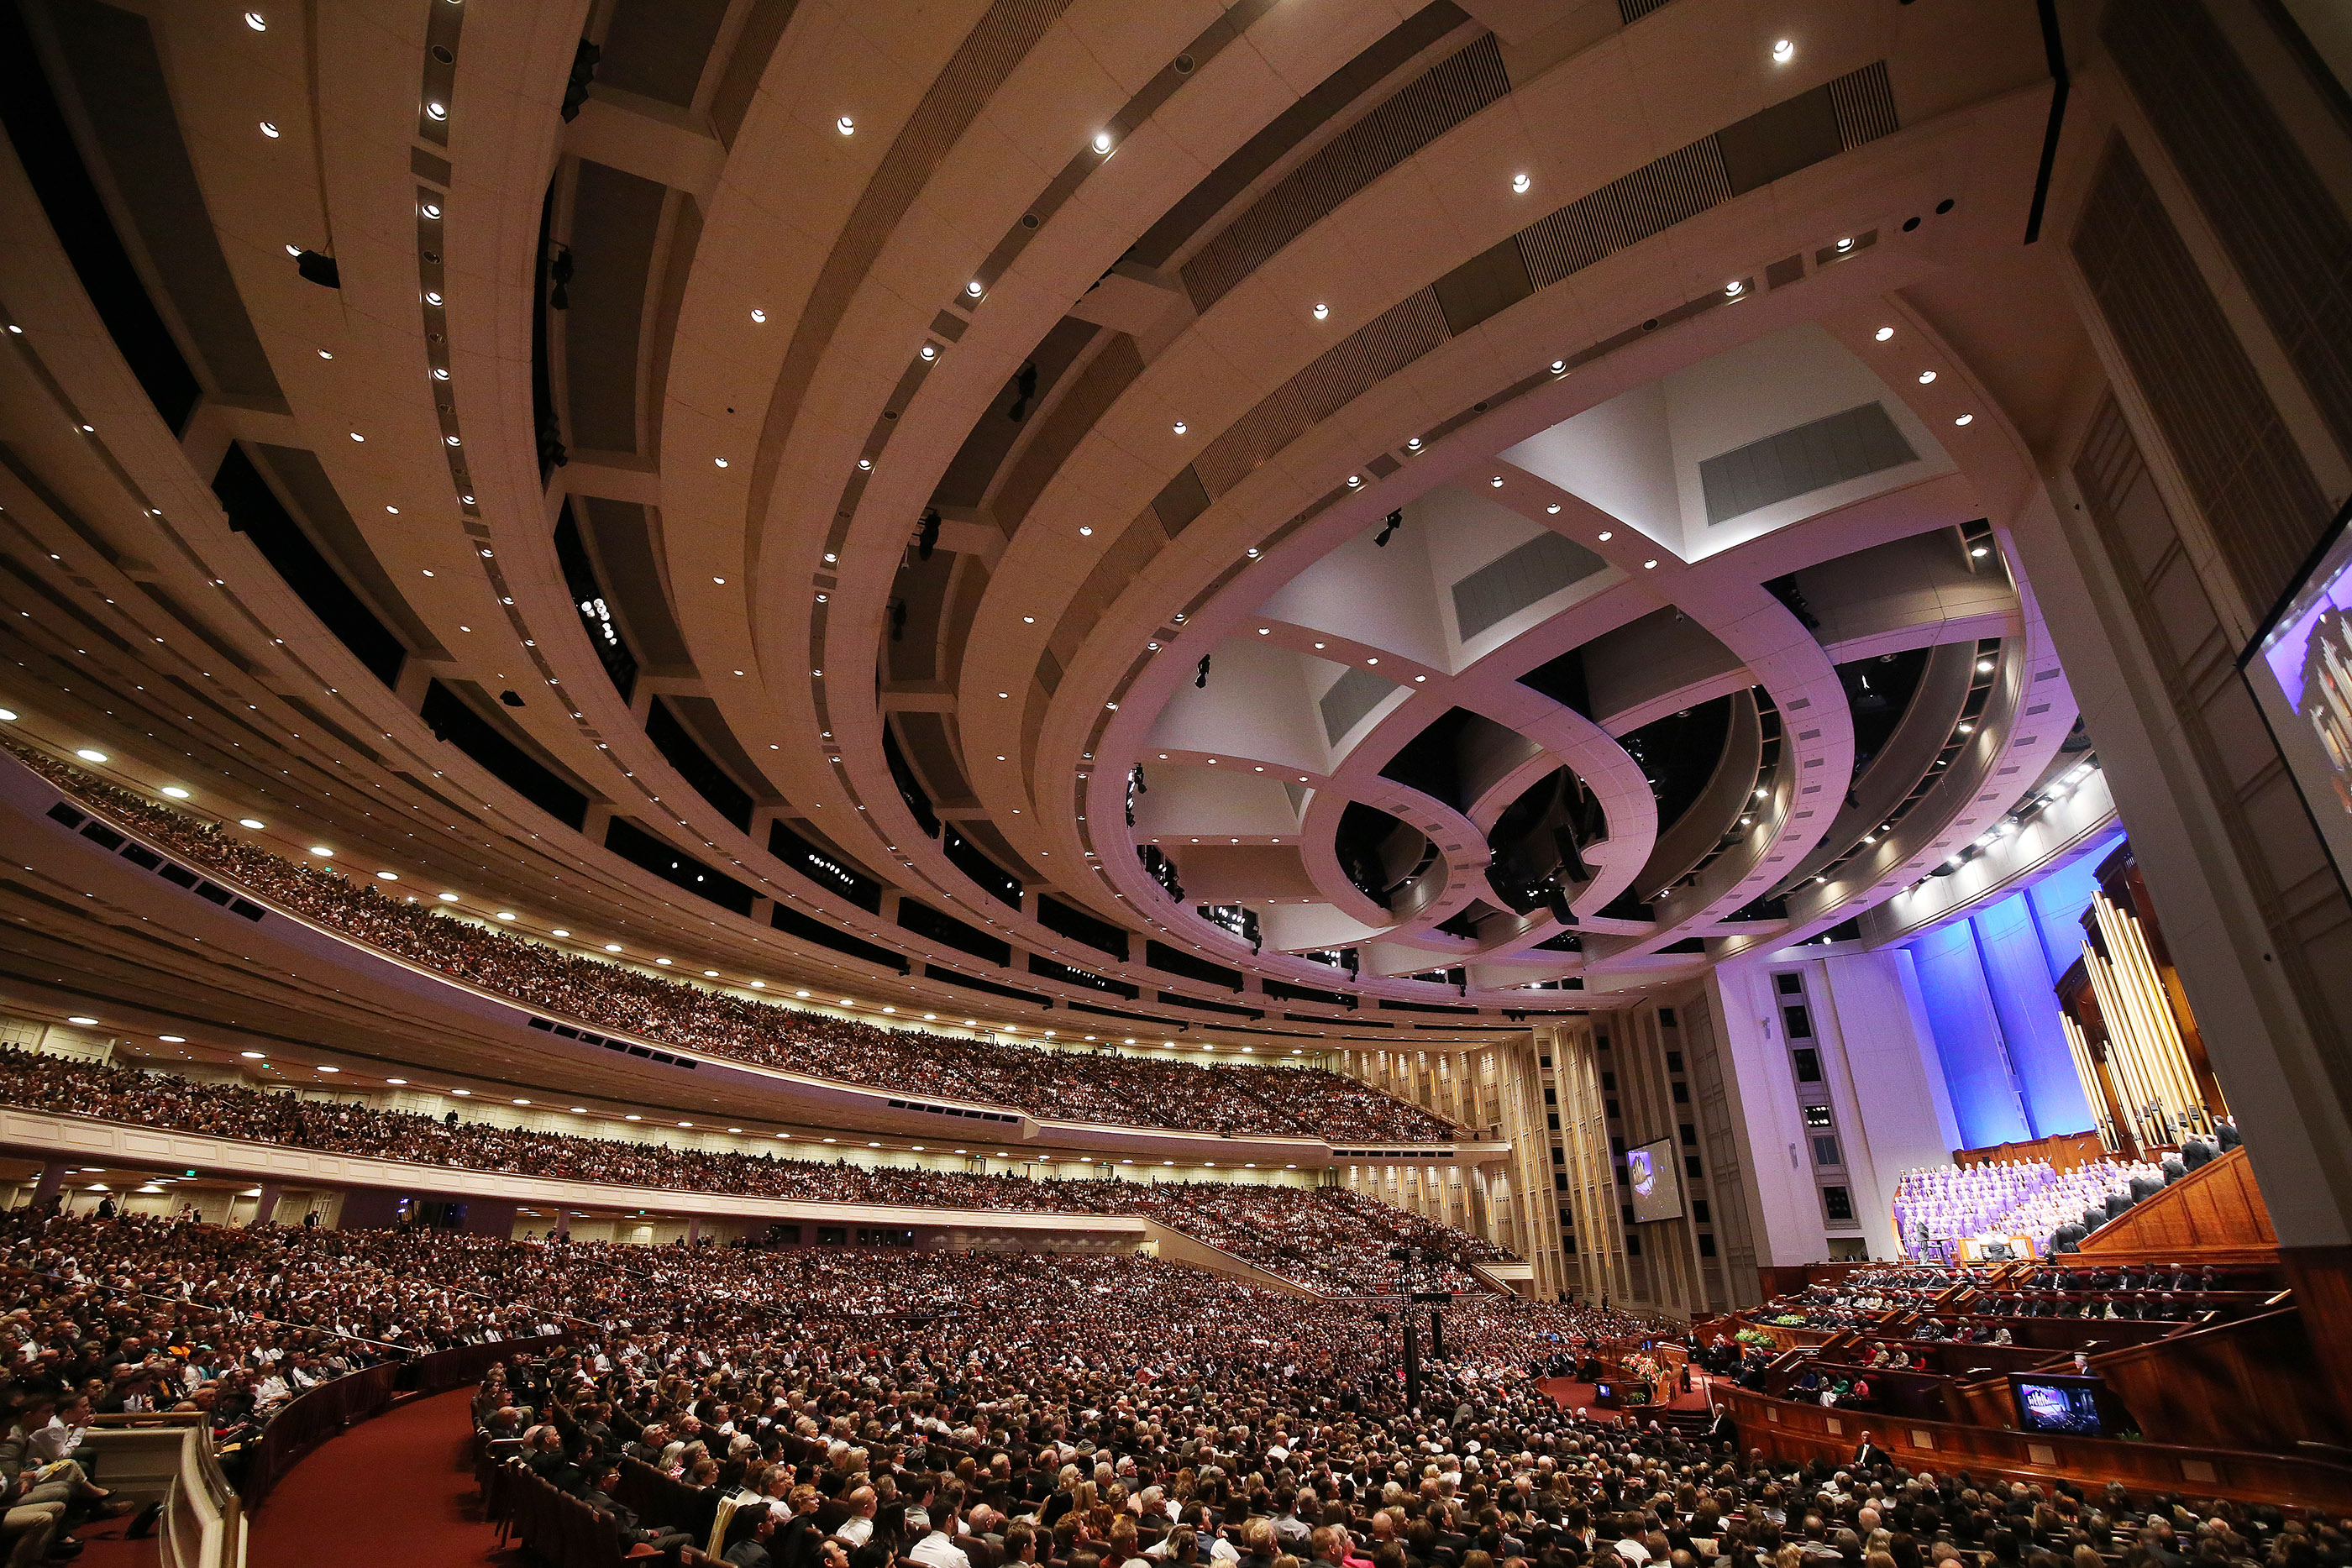 Conferencegoers attend the Saturday morning session of the 188th Semiannual General Conference of The Church of Jesus Christ of Latter-day Saints in the Conference Center in Salt Lake City on Saturday, Oct. 6, 2018.